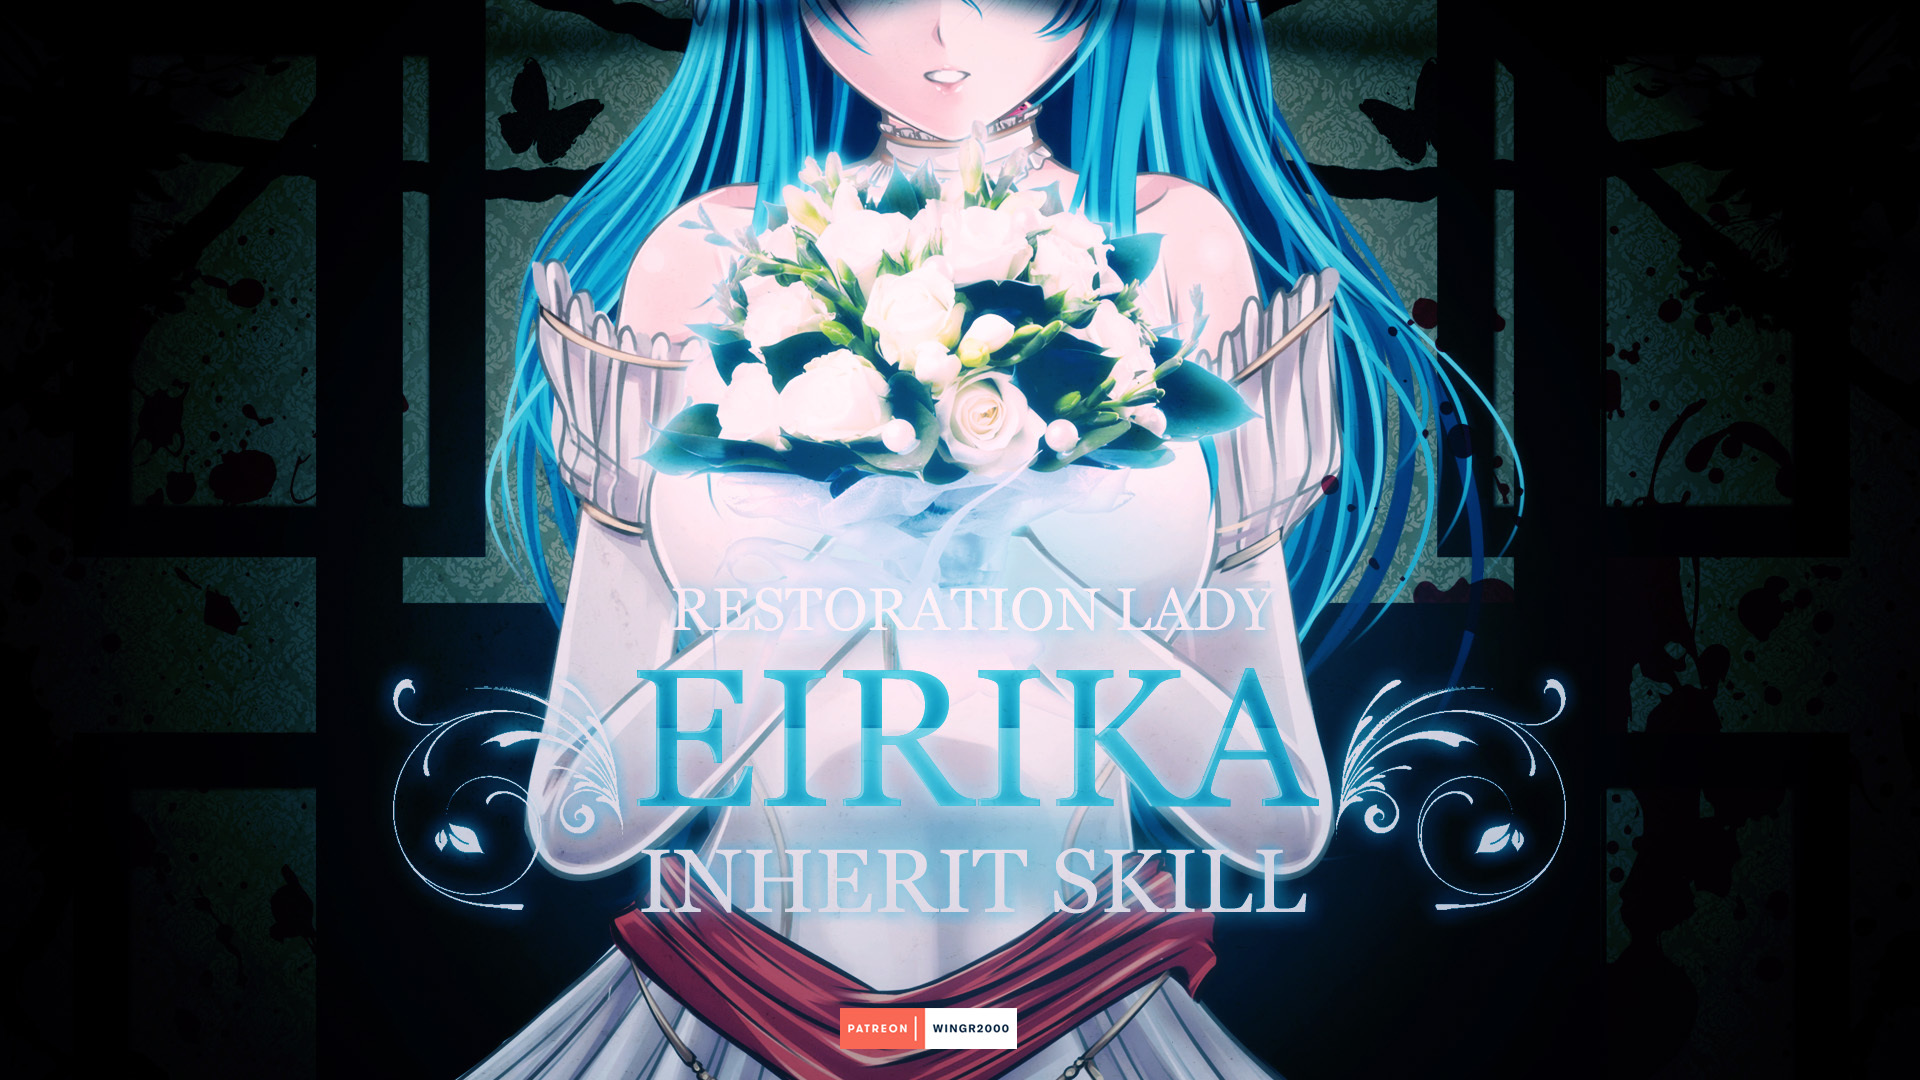 Restoration Lady Eirika - Inherit Skill